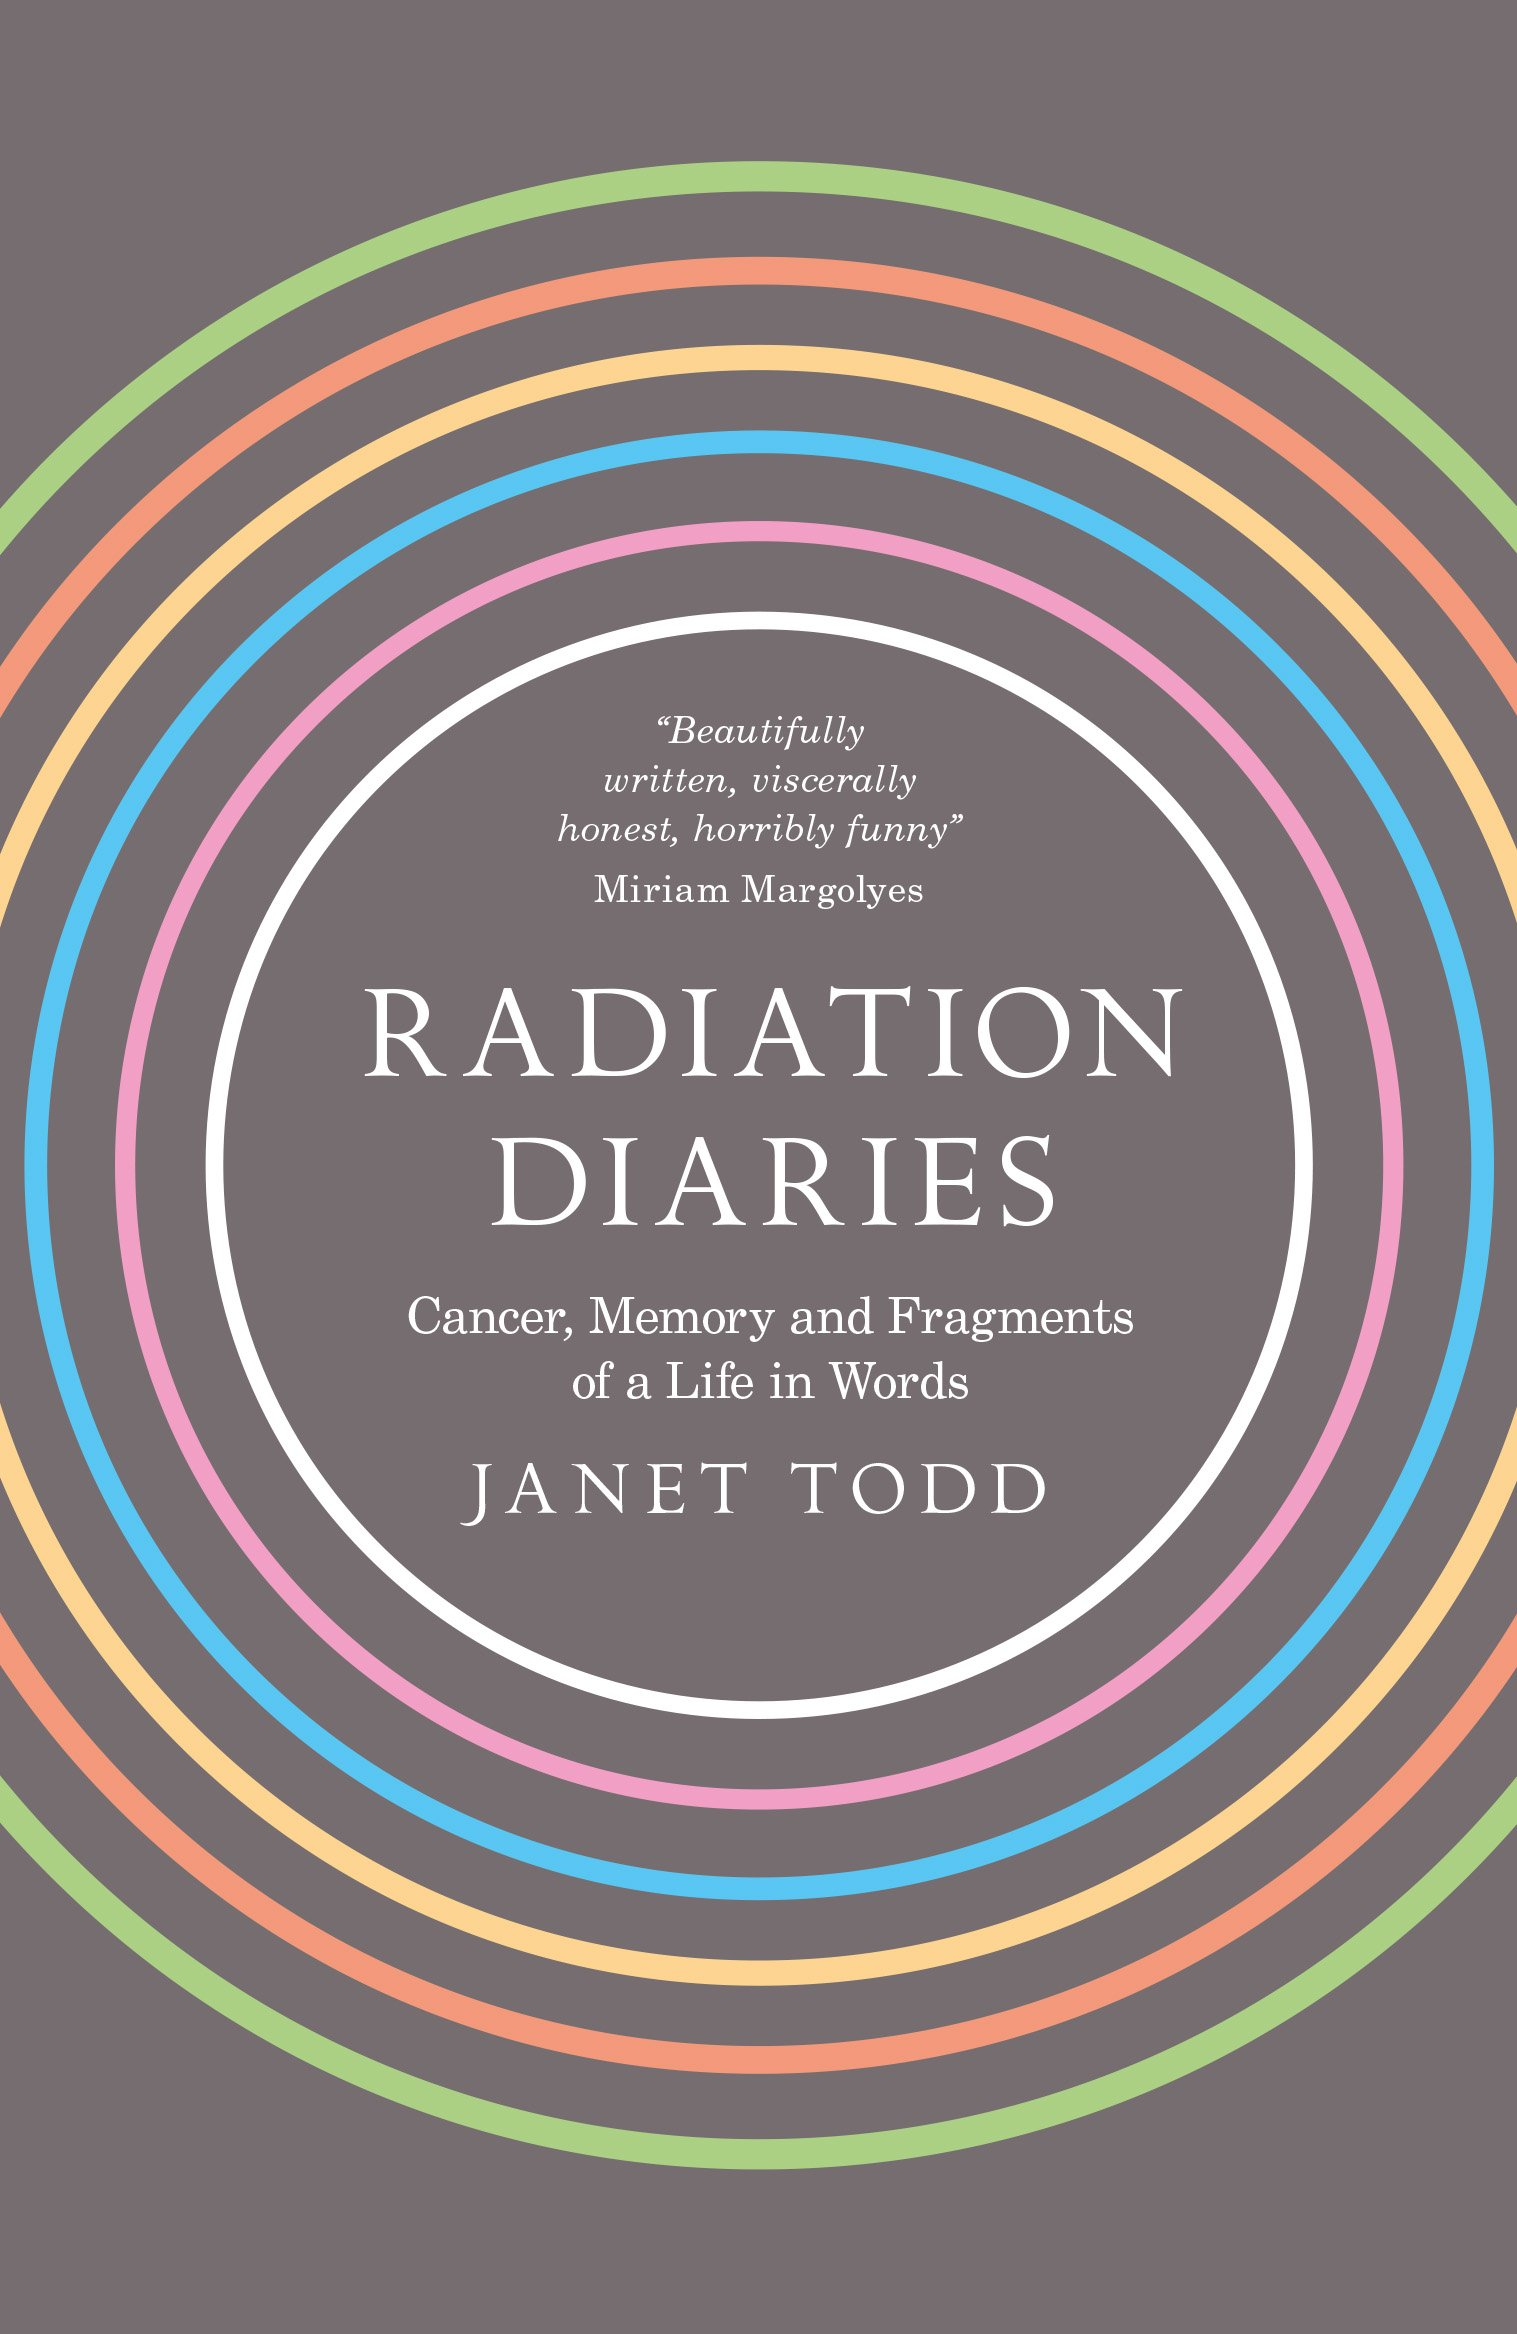 Radiation Diaries: Cancer, Memory and Fragments of a Life in